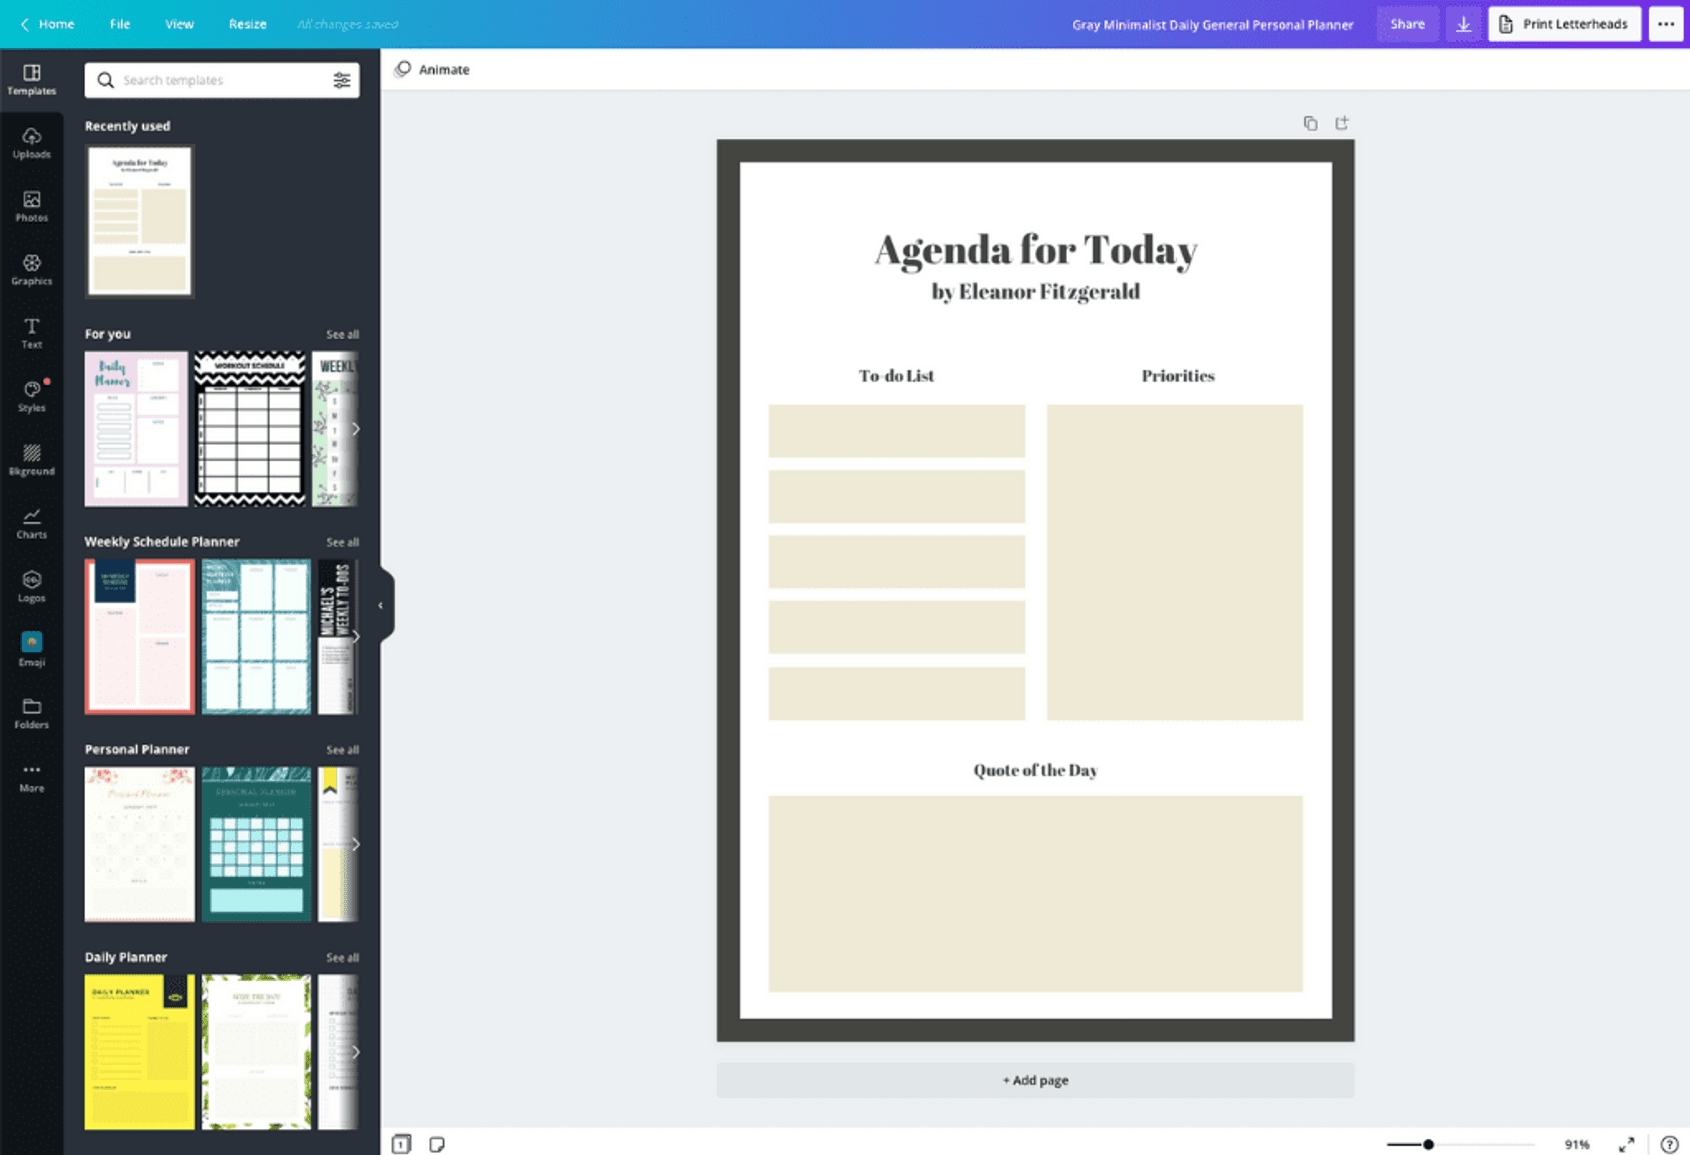 Free Online Personal Planner Maker: Design A Custom Personal